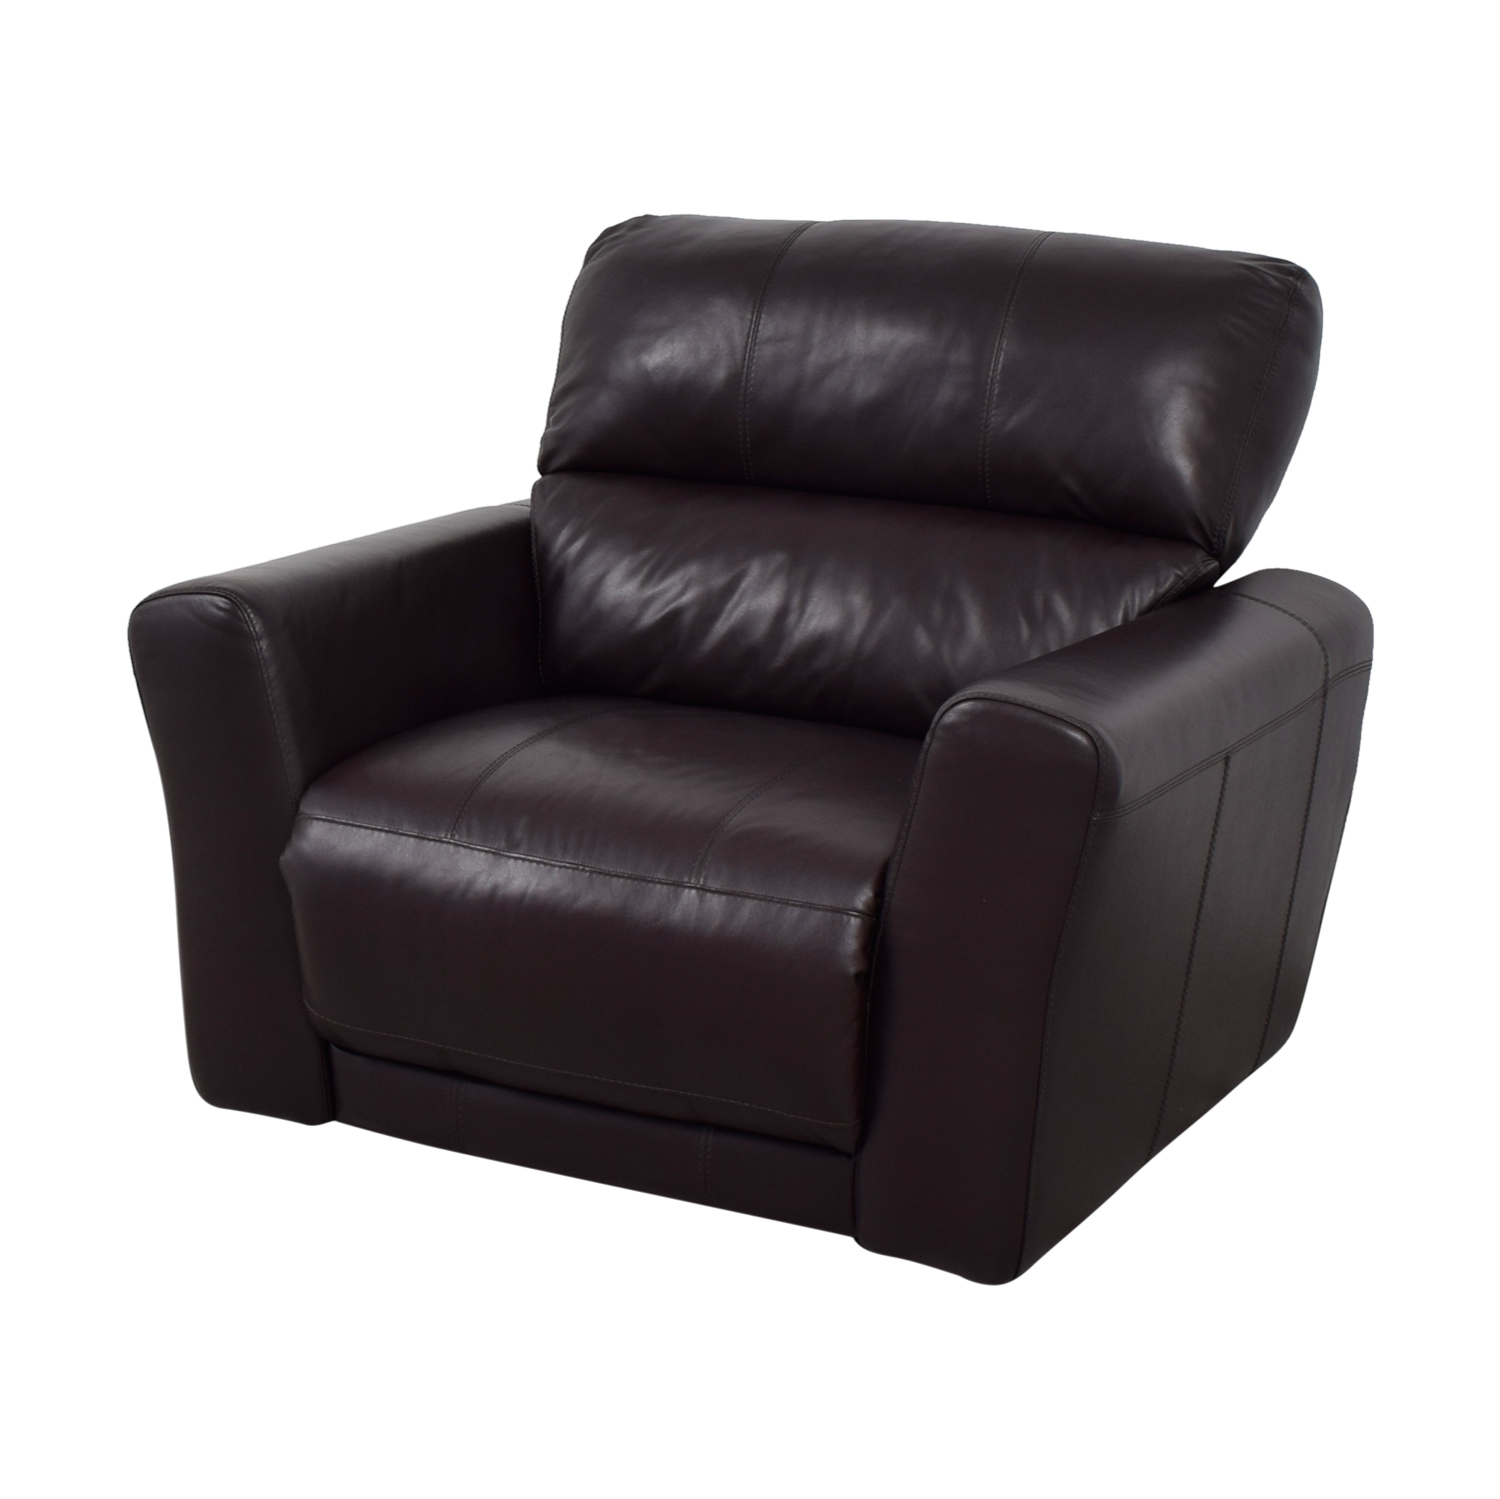 90 Off Macy S Macy S Chocolate Leather Recliner Chairs